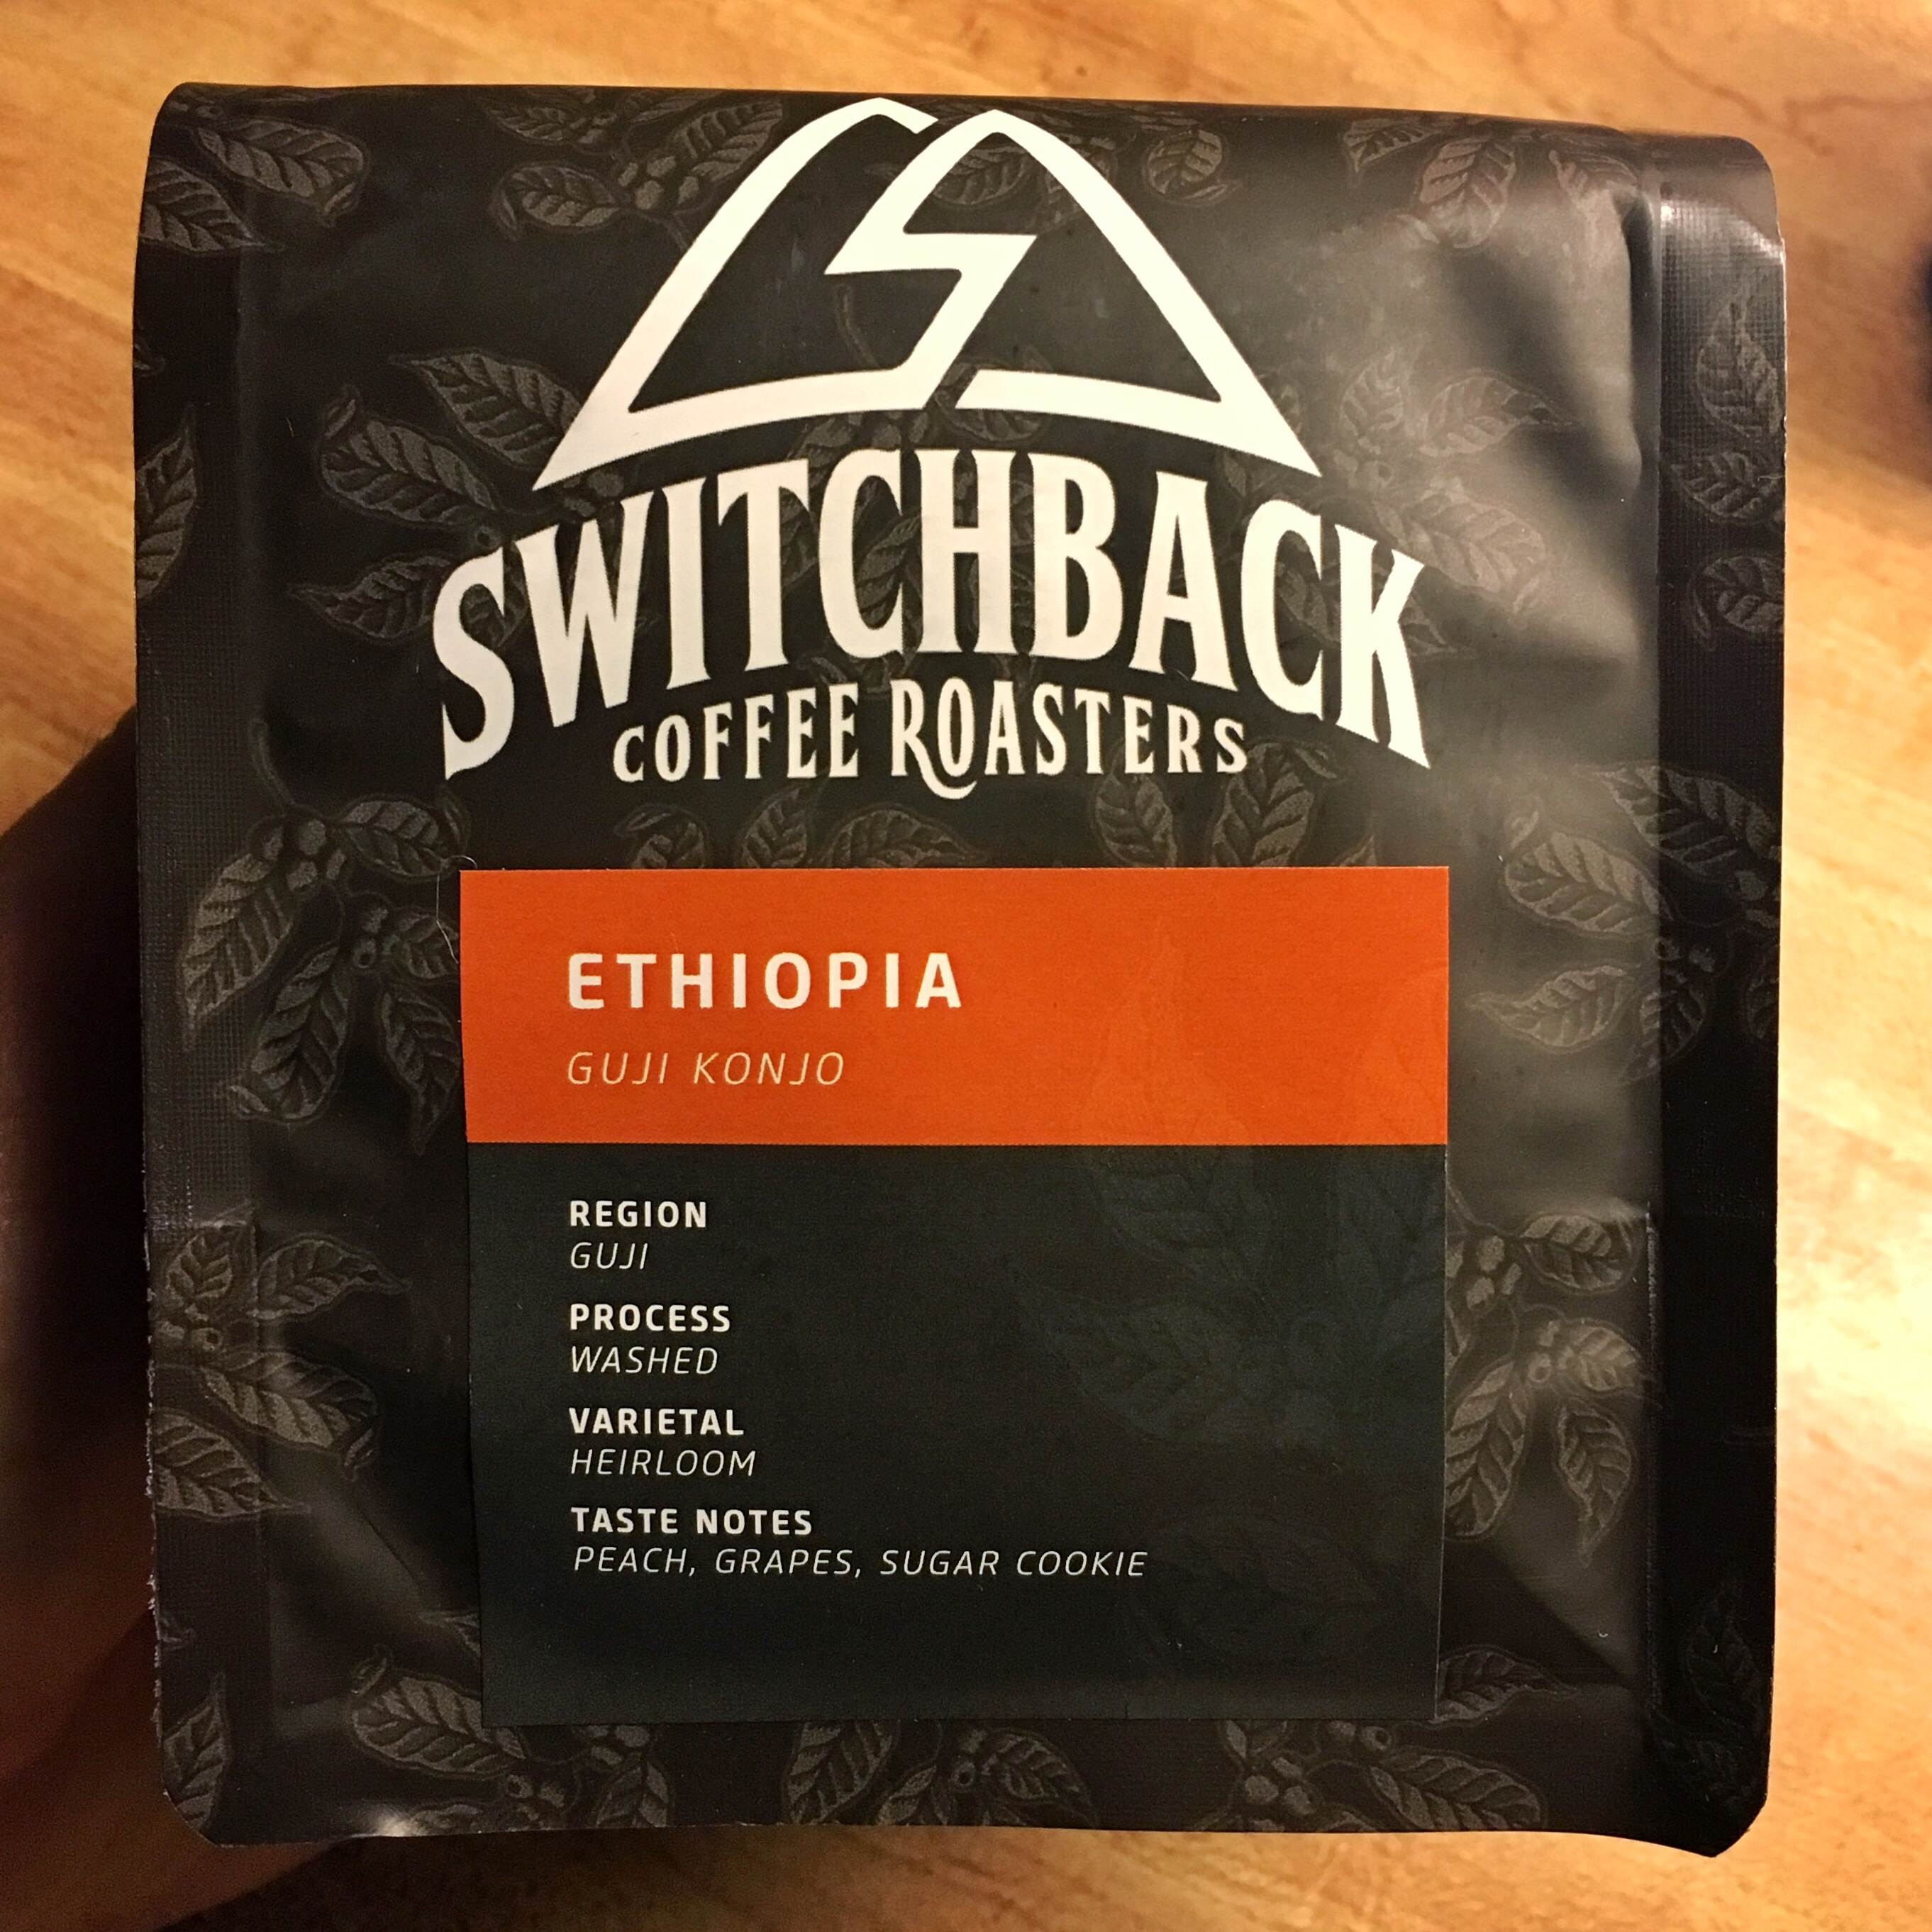 Switchback Coffee Roasters Ethiopia Guji Konjo